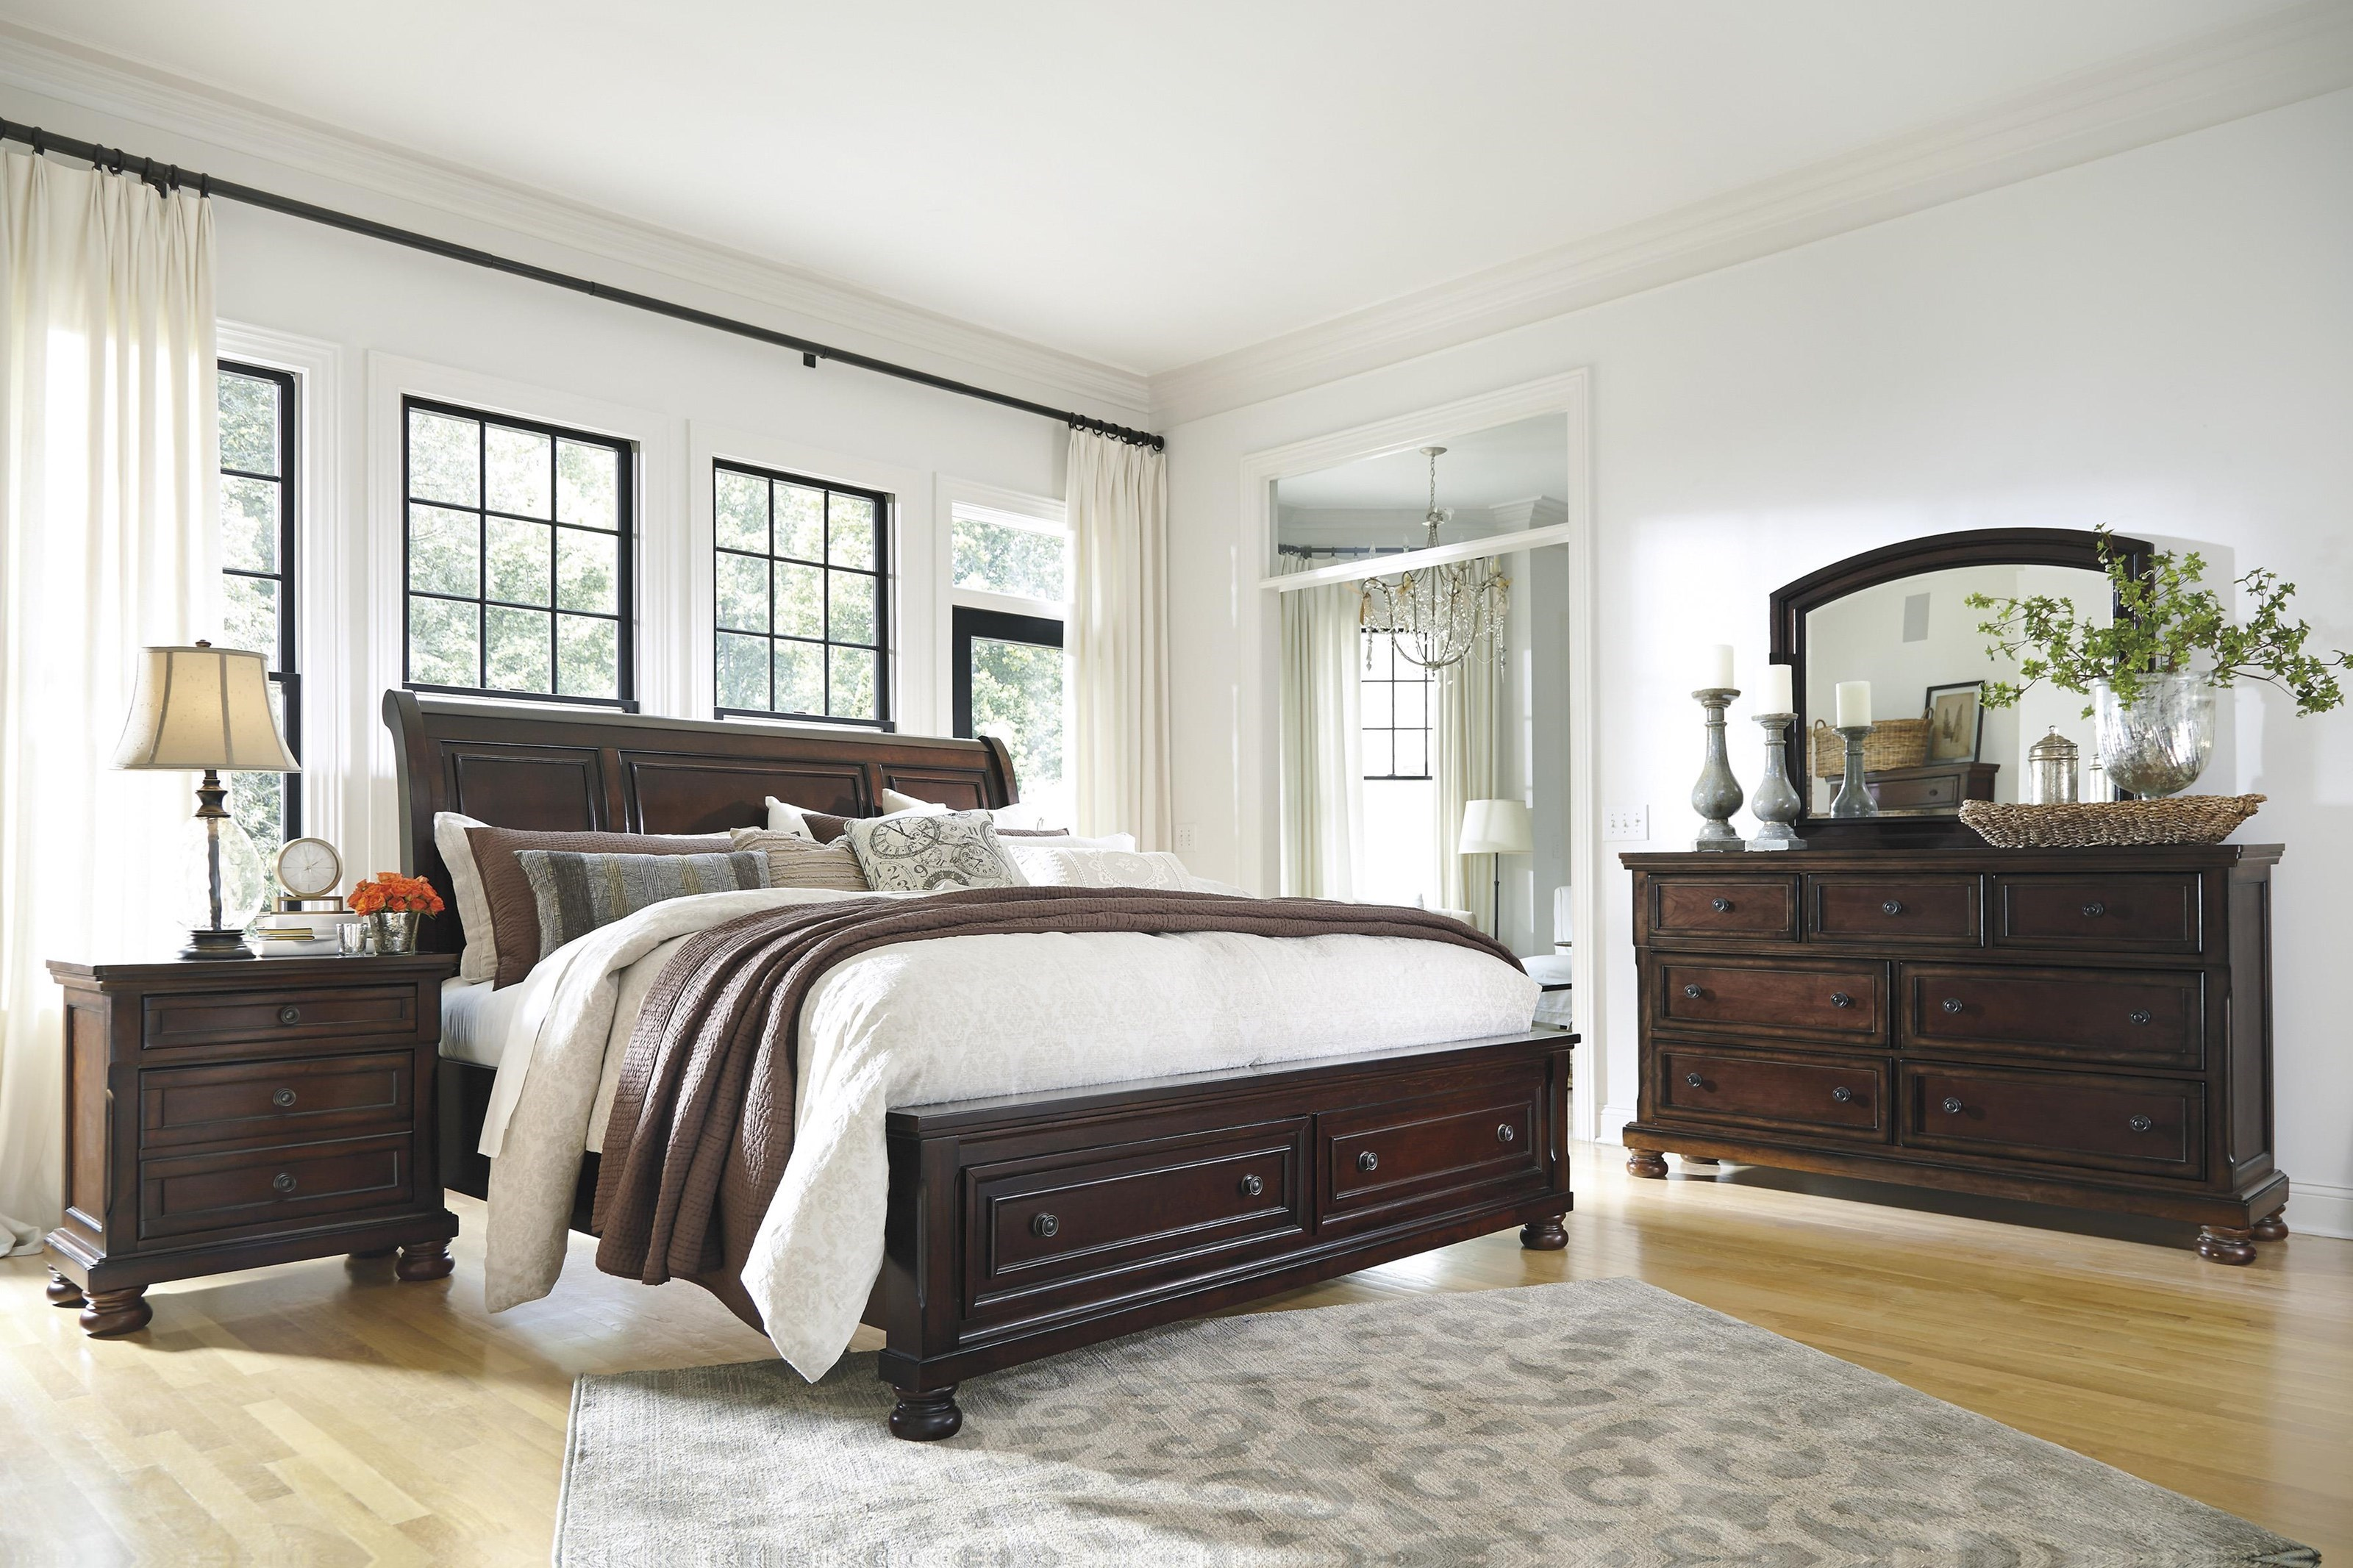 Picture of: Ashley Furniture Porter B697 77 74 98 31 36 Queen Sleigh Bed With Storage Dresser And Mirror Package Sam Levitz Furniture Bedroom Groups